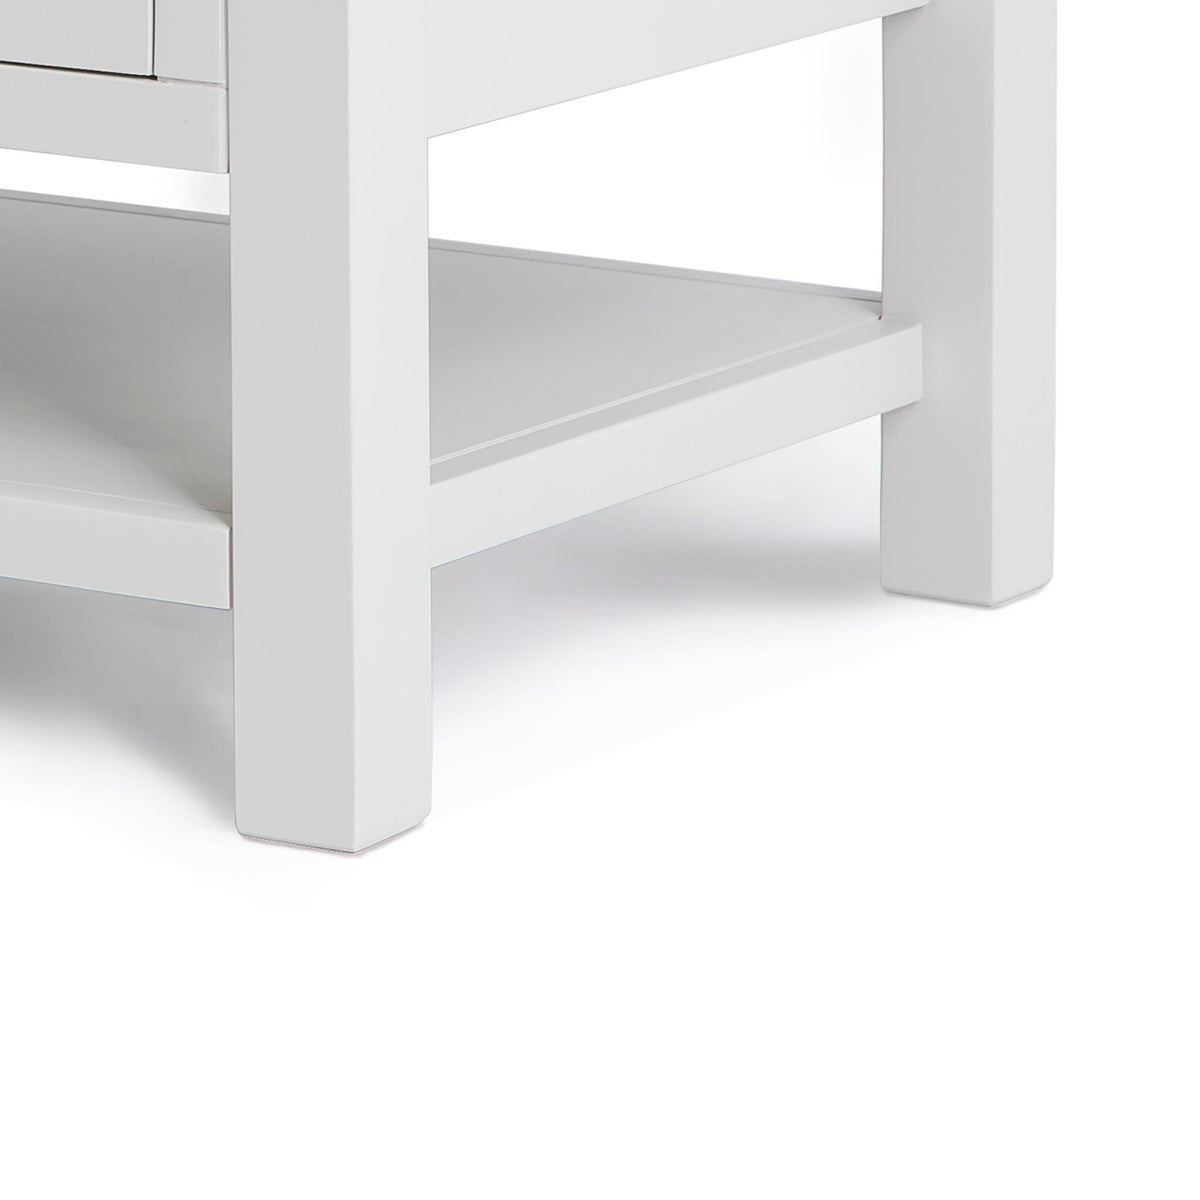 Farrow Grey Coffee Table with Drawer - Lower shelf and feet of table